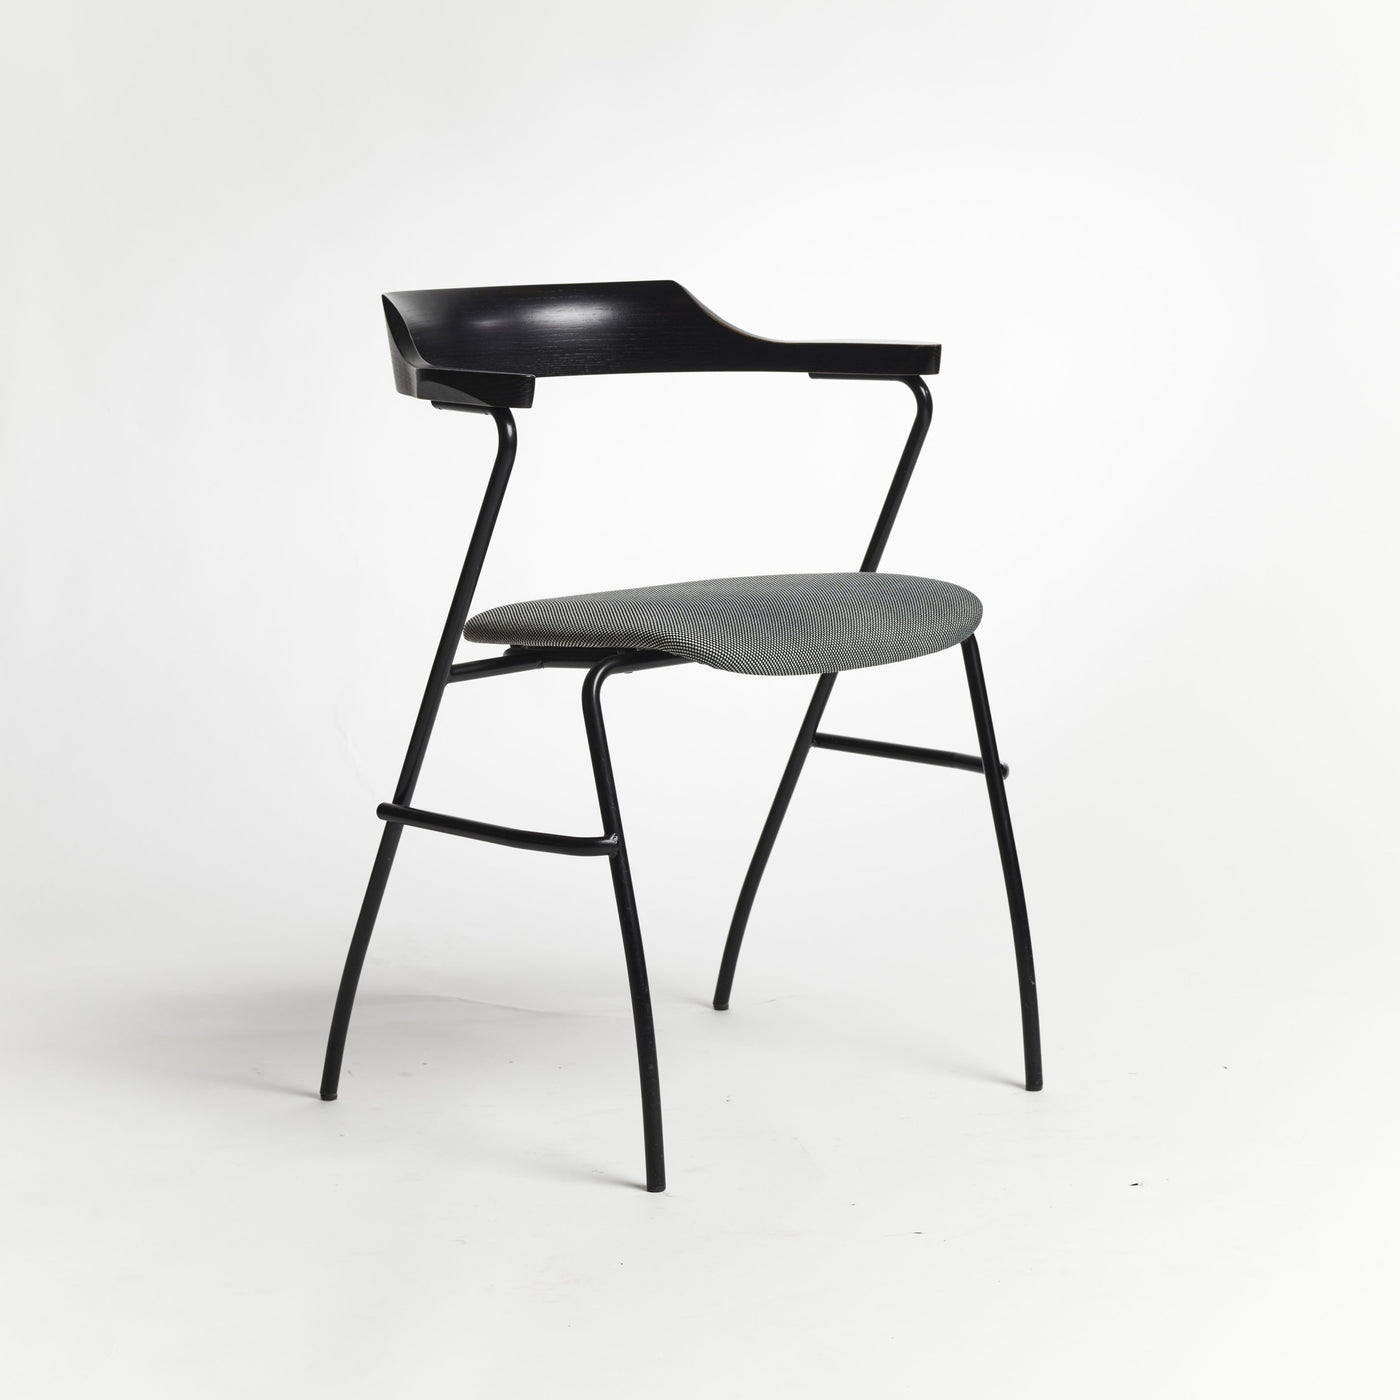 Project Chair offset seat Rohi textile pepper